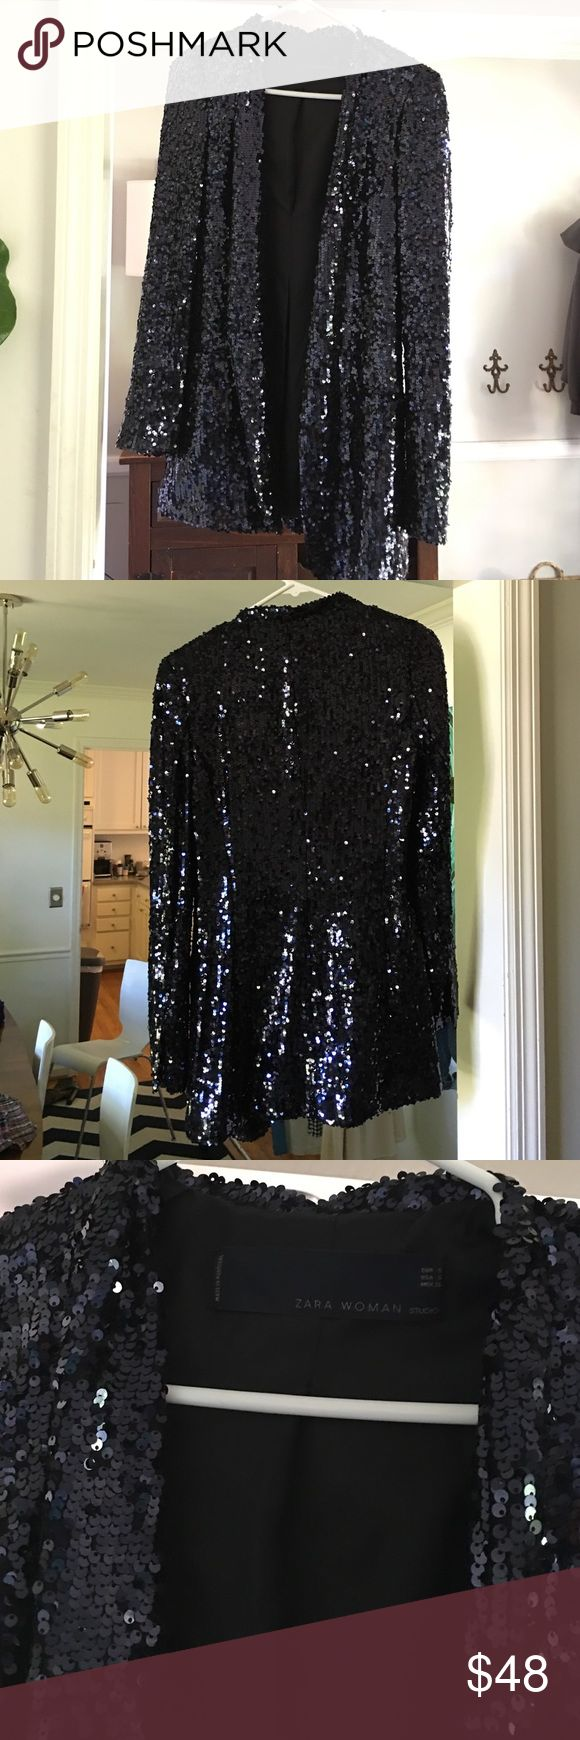 Zara Navy Blue Sequined Blazer Excellent condition Zara size small navy blue sequin blazer. Perfect for a night out on the town, a special occasion or just to jazz your wardrobe! Zara Jackets & Coats Blazers